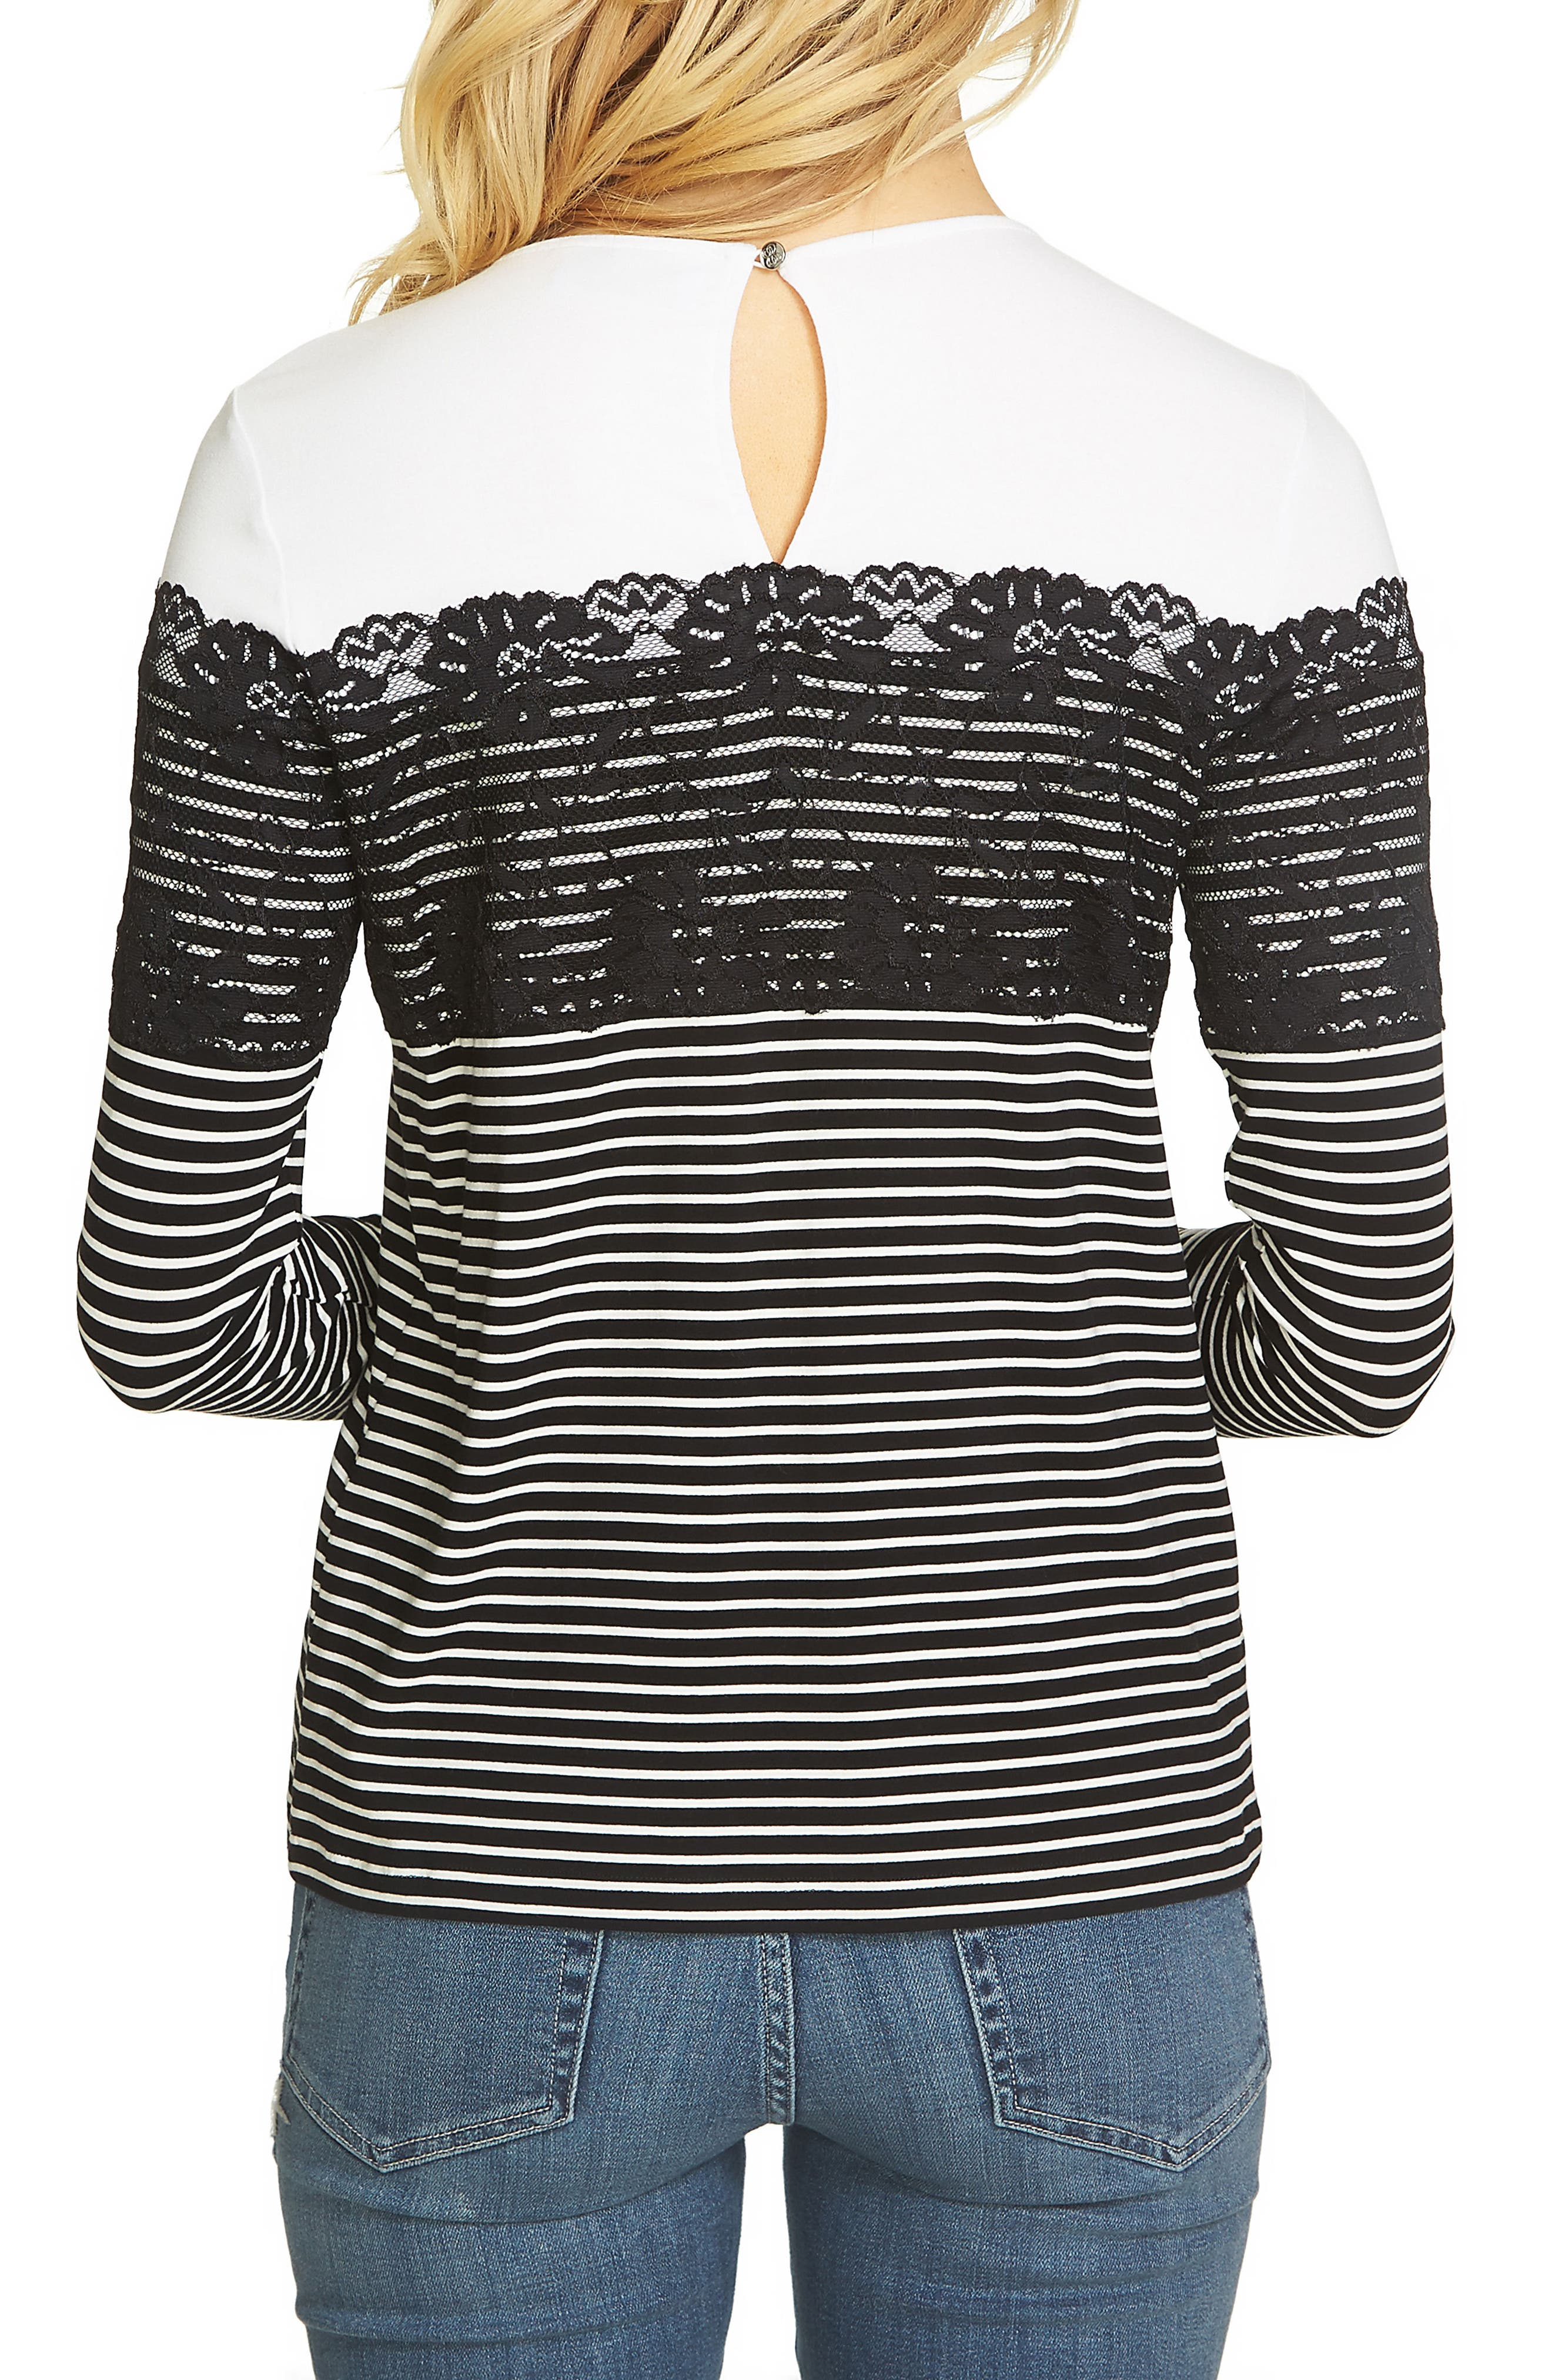 Lacy Striped Top,                             Alternate thumbnail 2, color,                             Rich Black